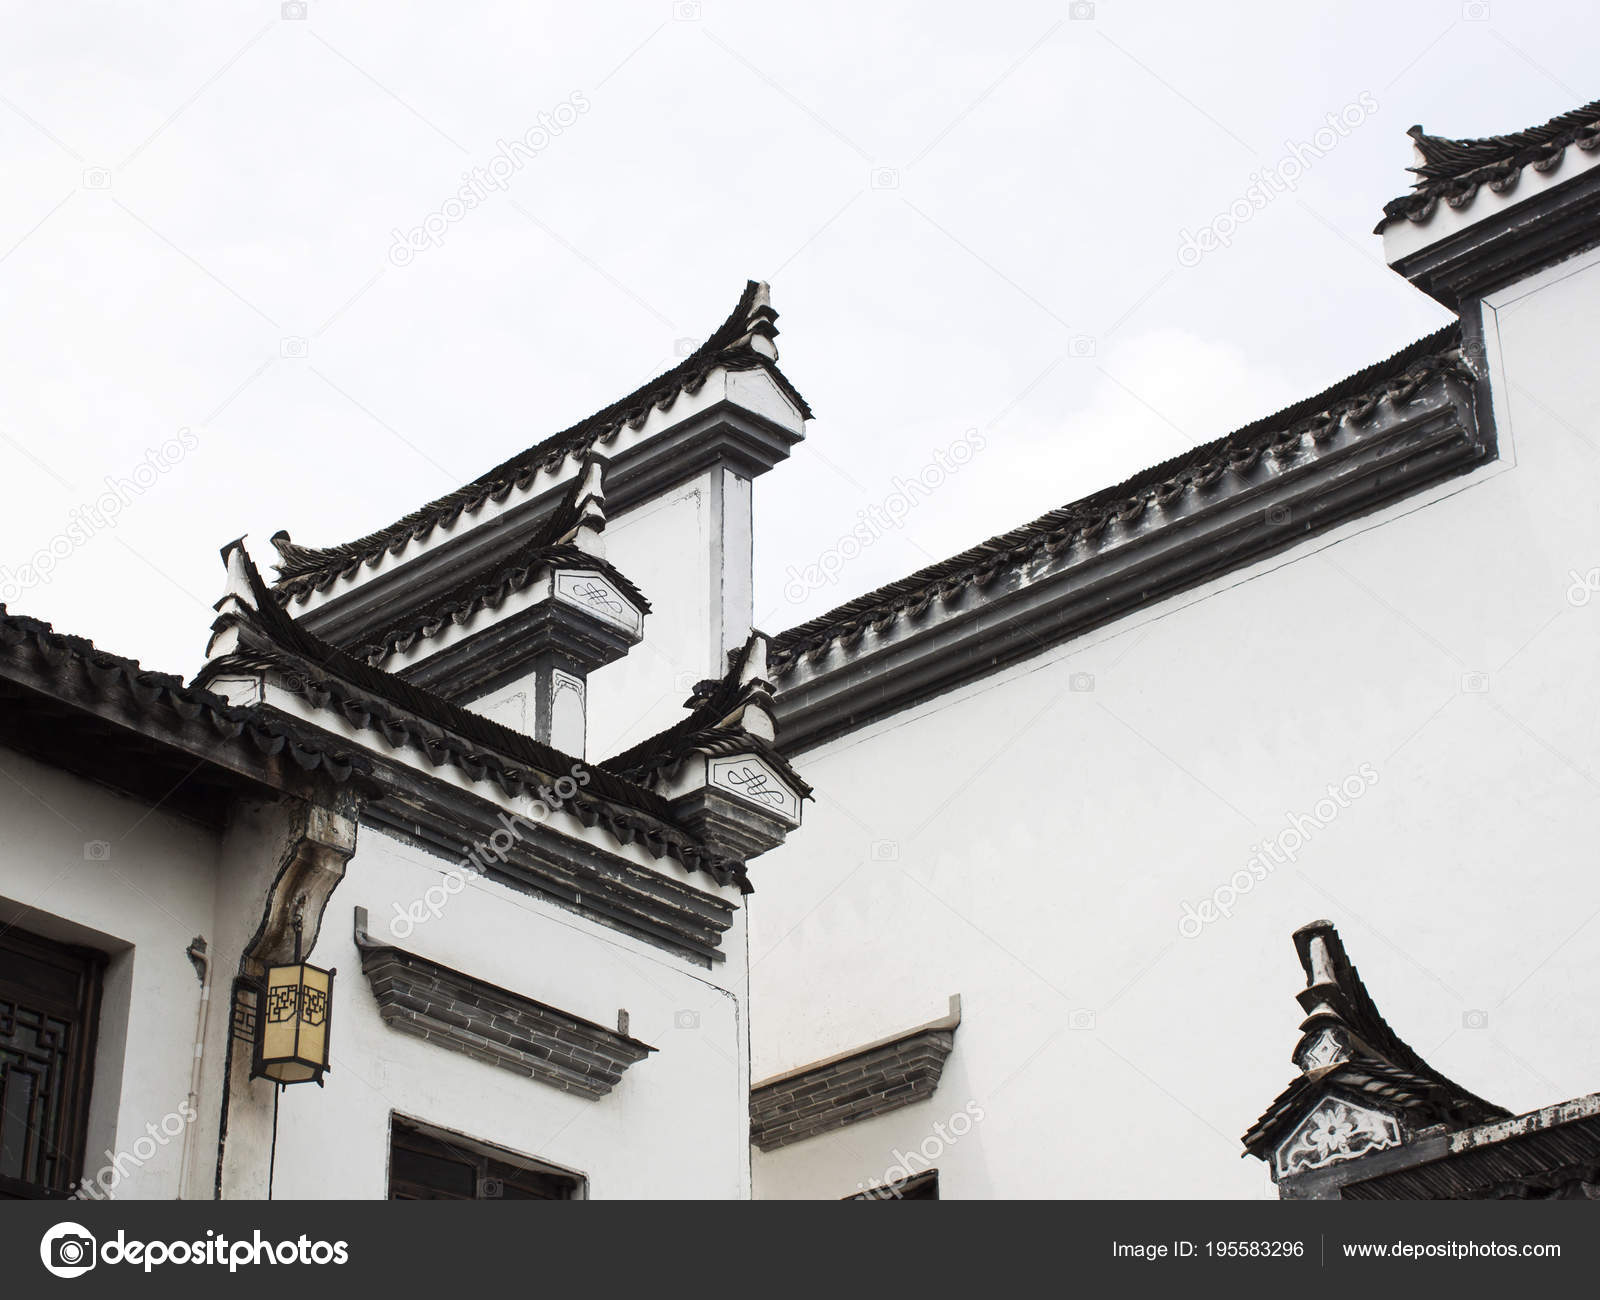 Architectural Elements Of Traditional Chinese Design Stock Photo C Askarimullin 195583296